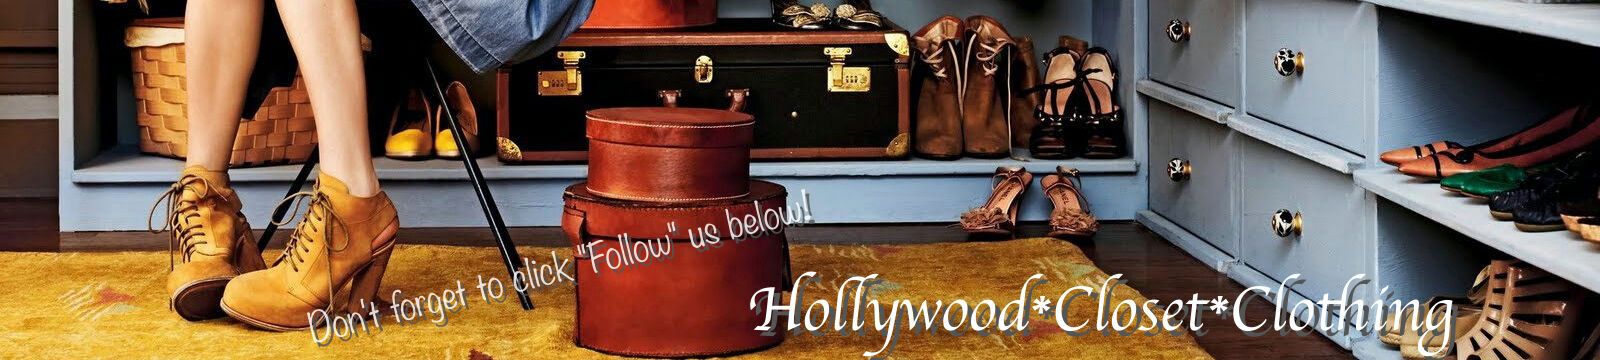 Hollywood Closet Clothing